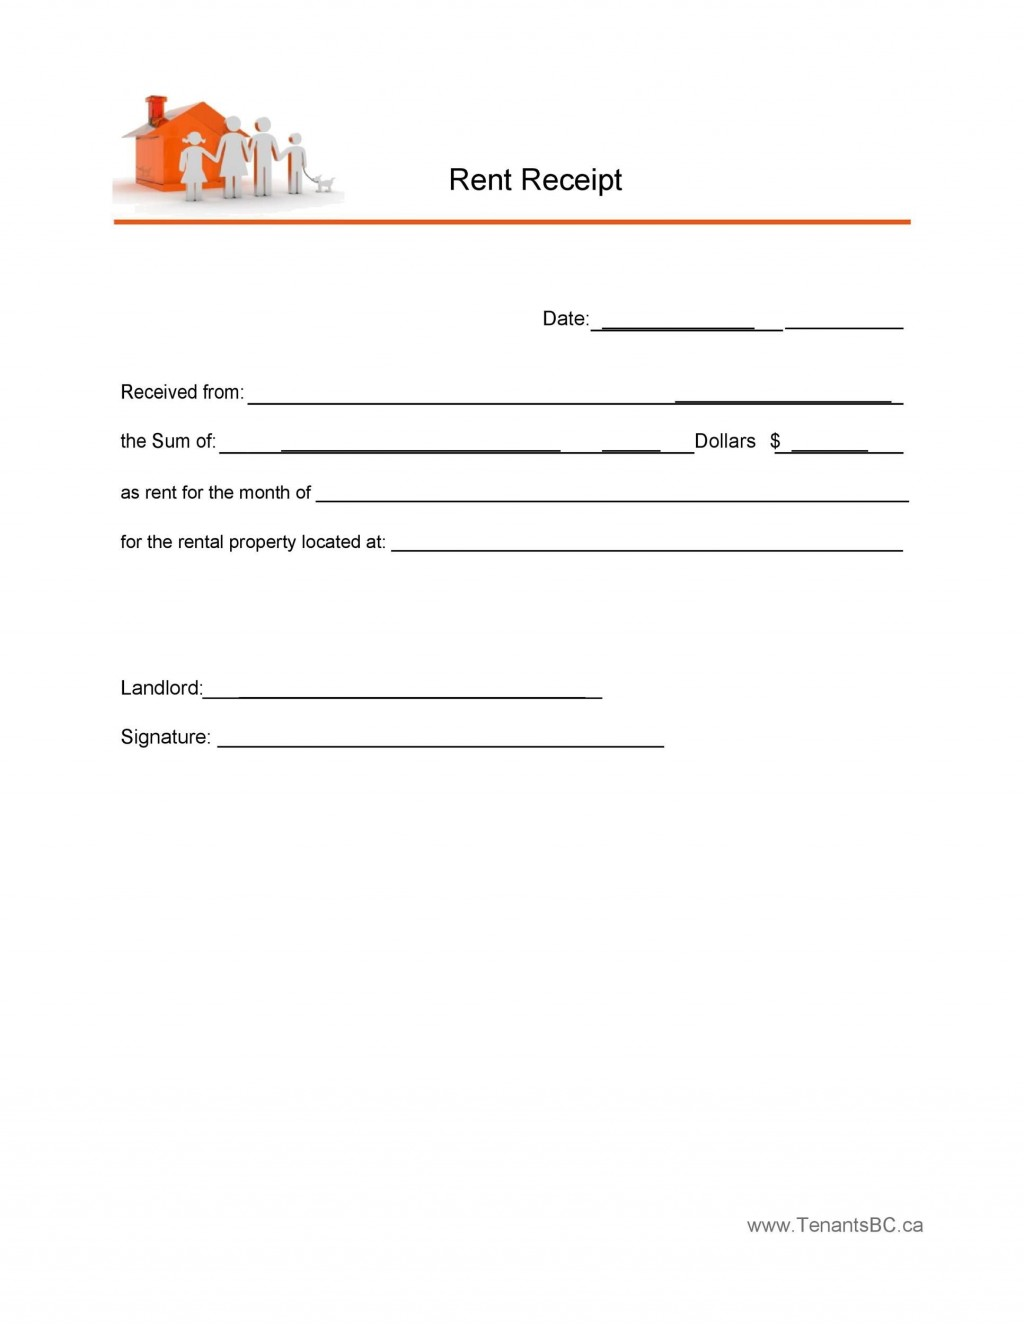 010 Outstanding Rent Receipt Template Docx High Resolution  Format India Car Rental Bill DocLarge